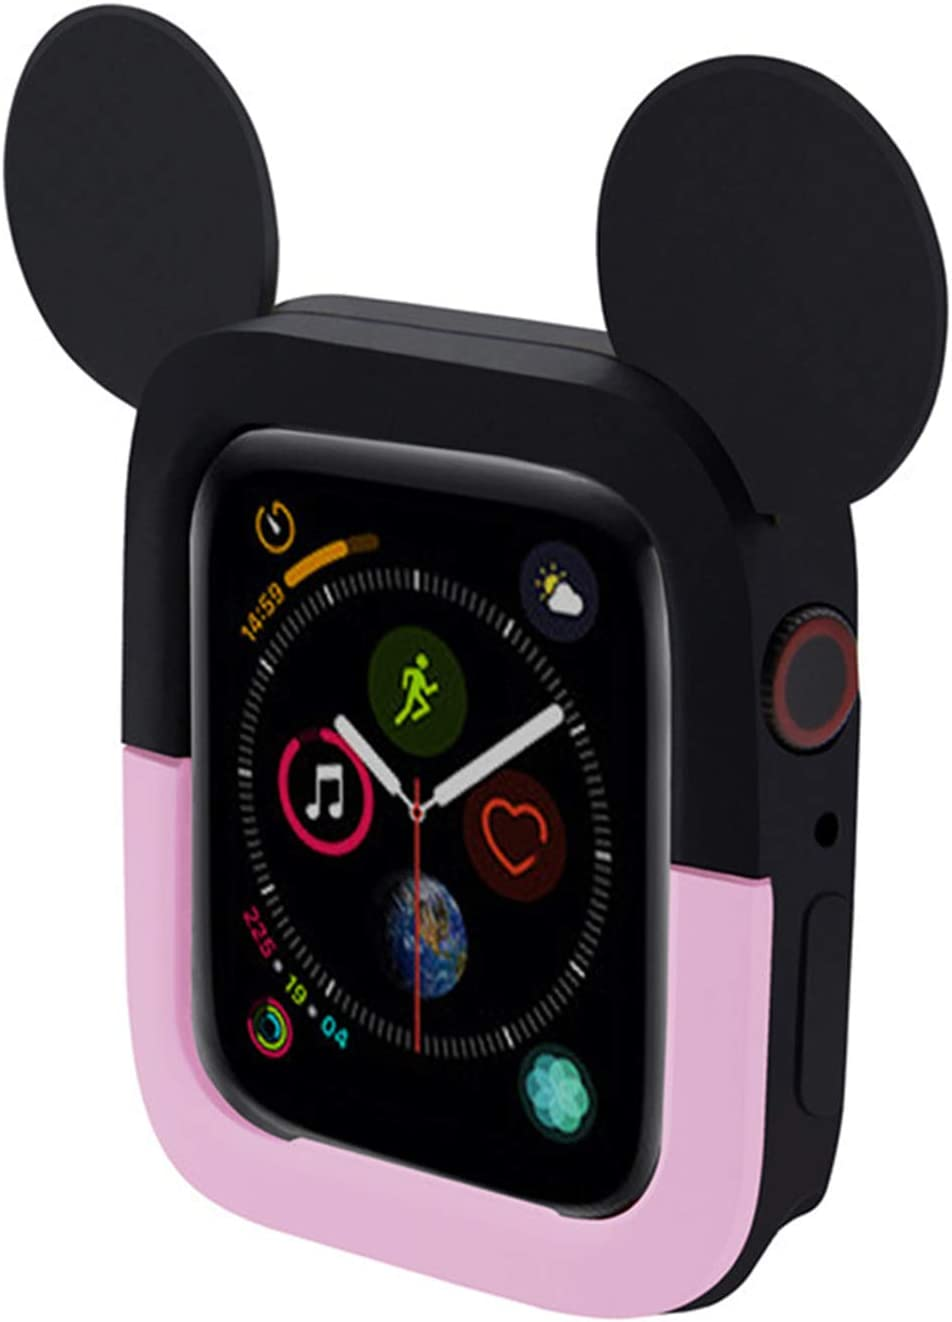 Compatible with Silicon Apple Watch Screen Protector 44mm, Soft Cute Cartoon Double Color Smart Watch Cover Shock-Proof and Shatter-Resistant Protective Case for iWatch Series 5 Series 4,Black Pink